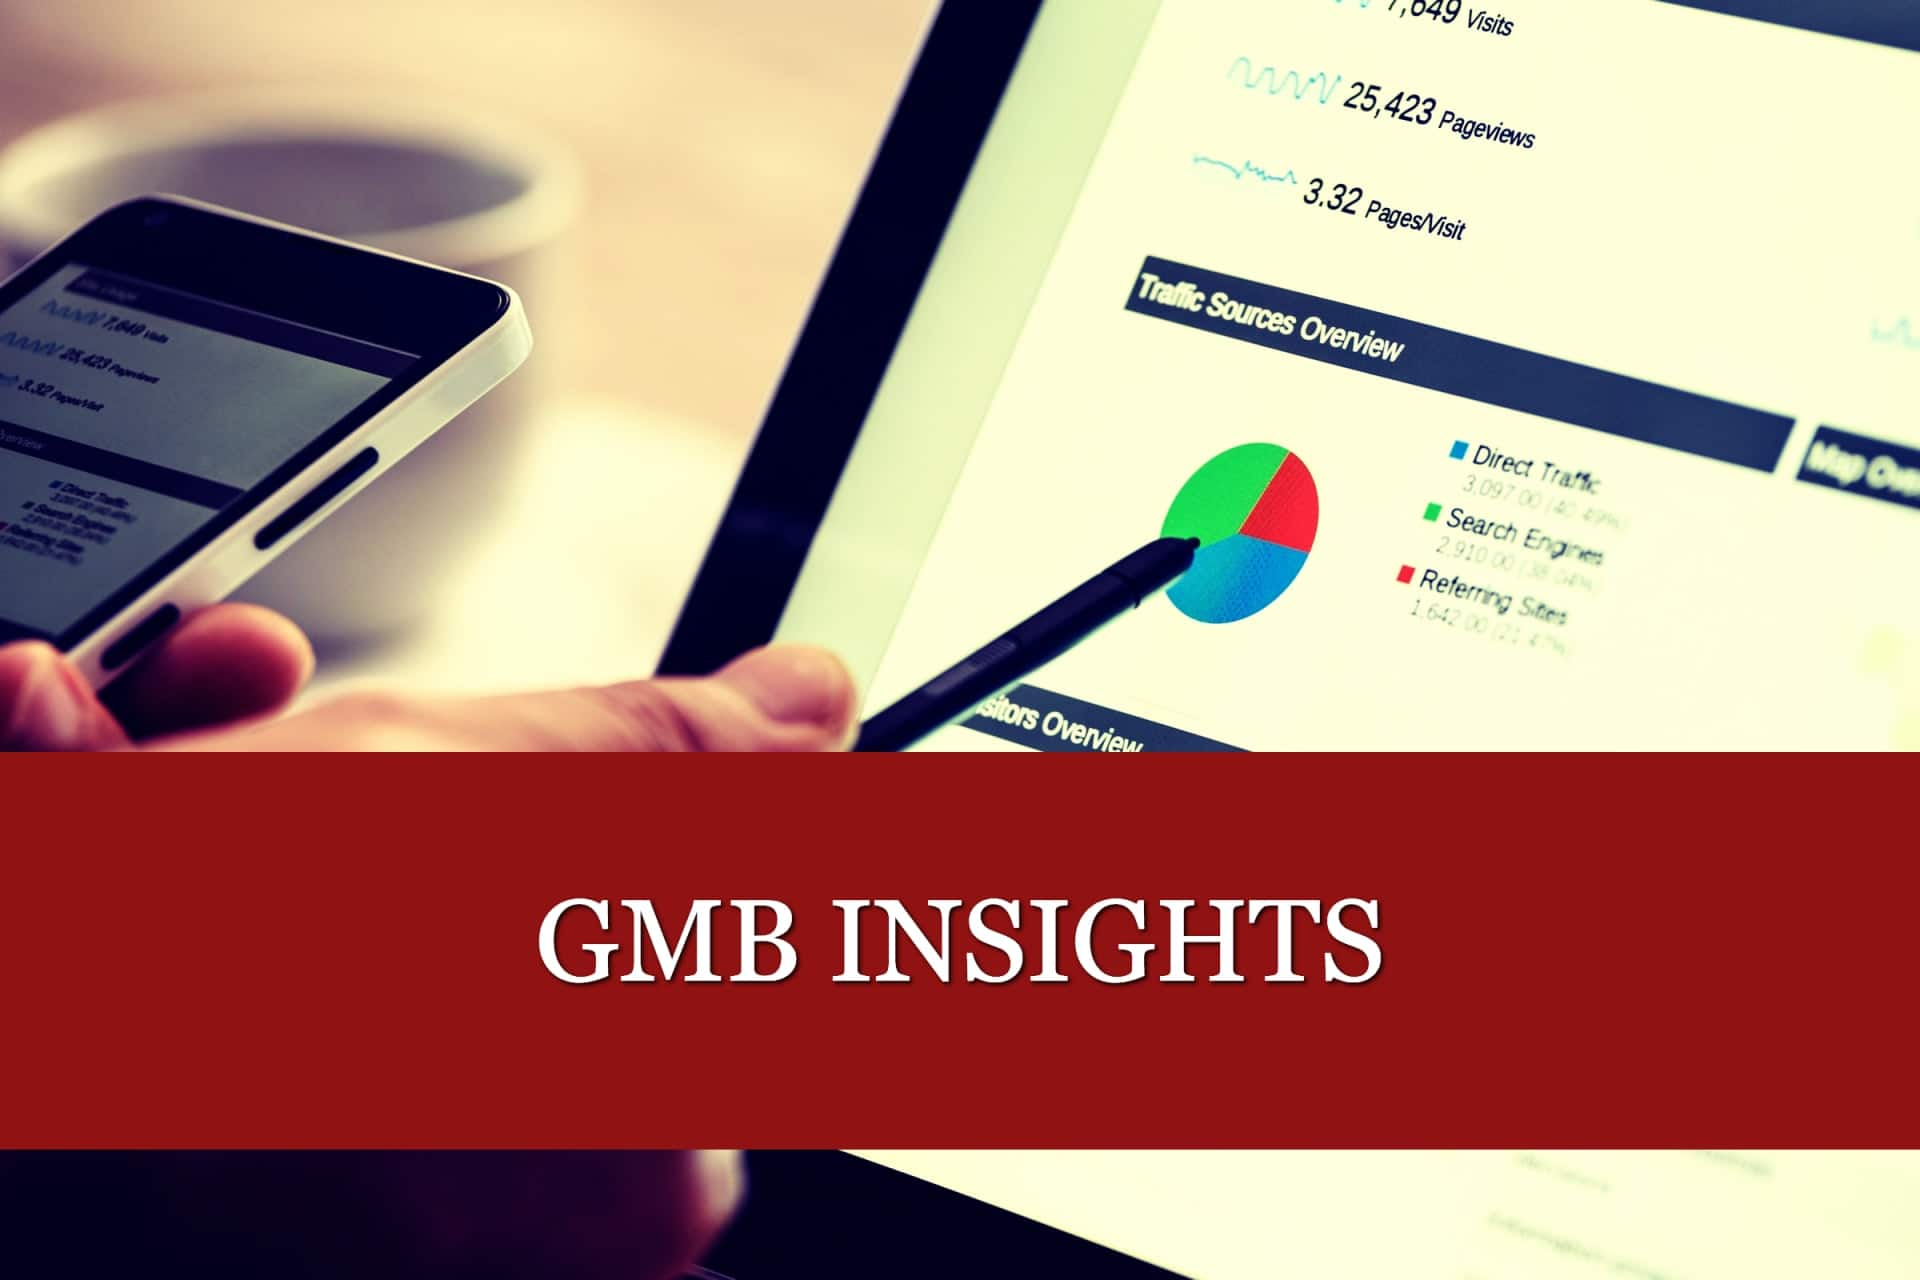 GMB Insights